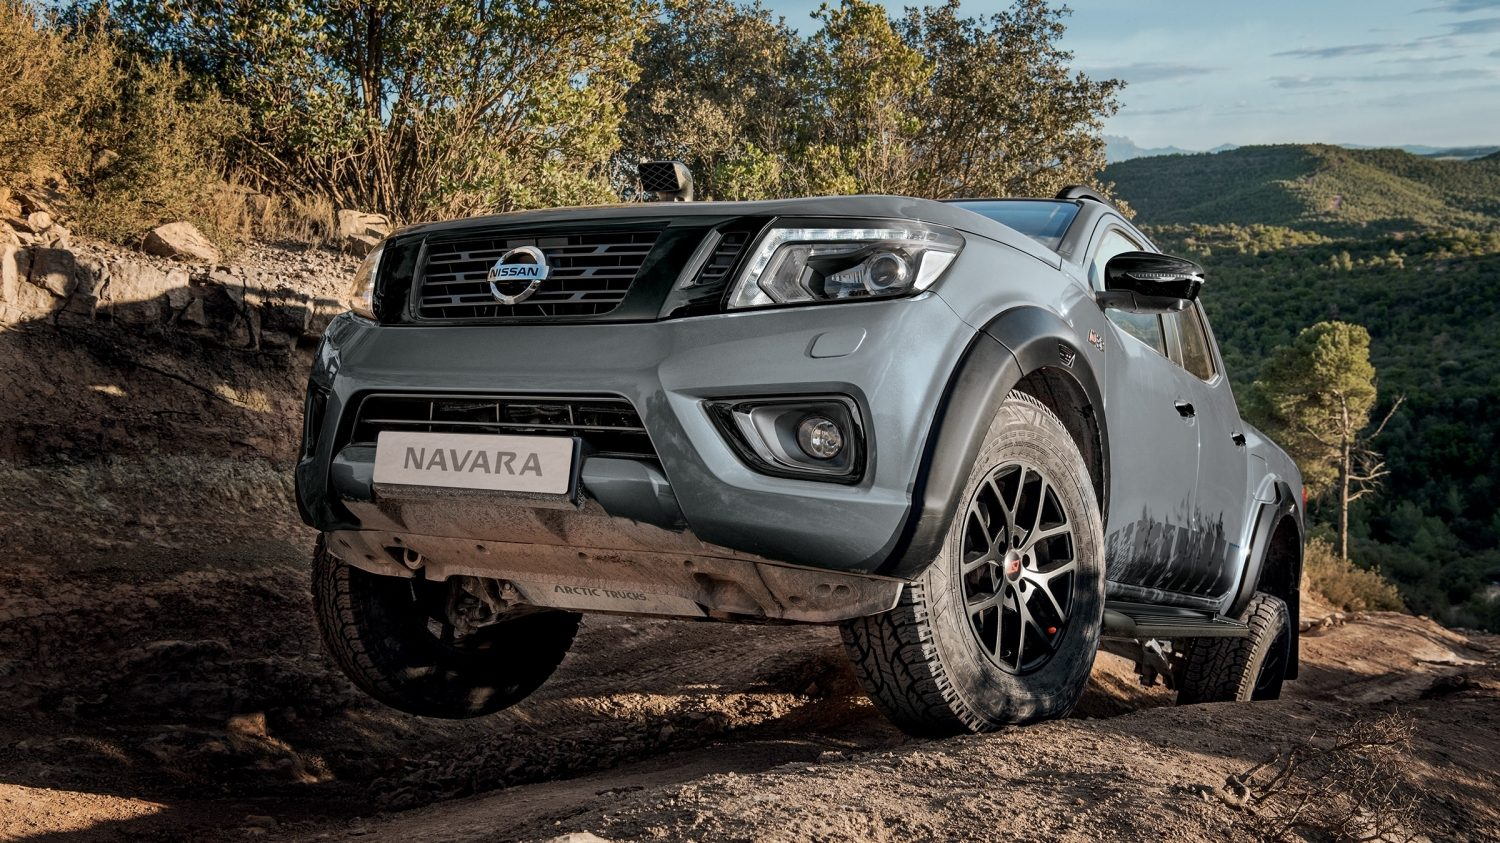 New Nissan Navara off-roader at32 with suspensions in action in extreme conditions